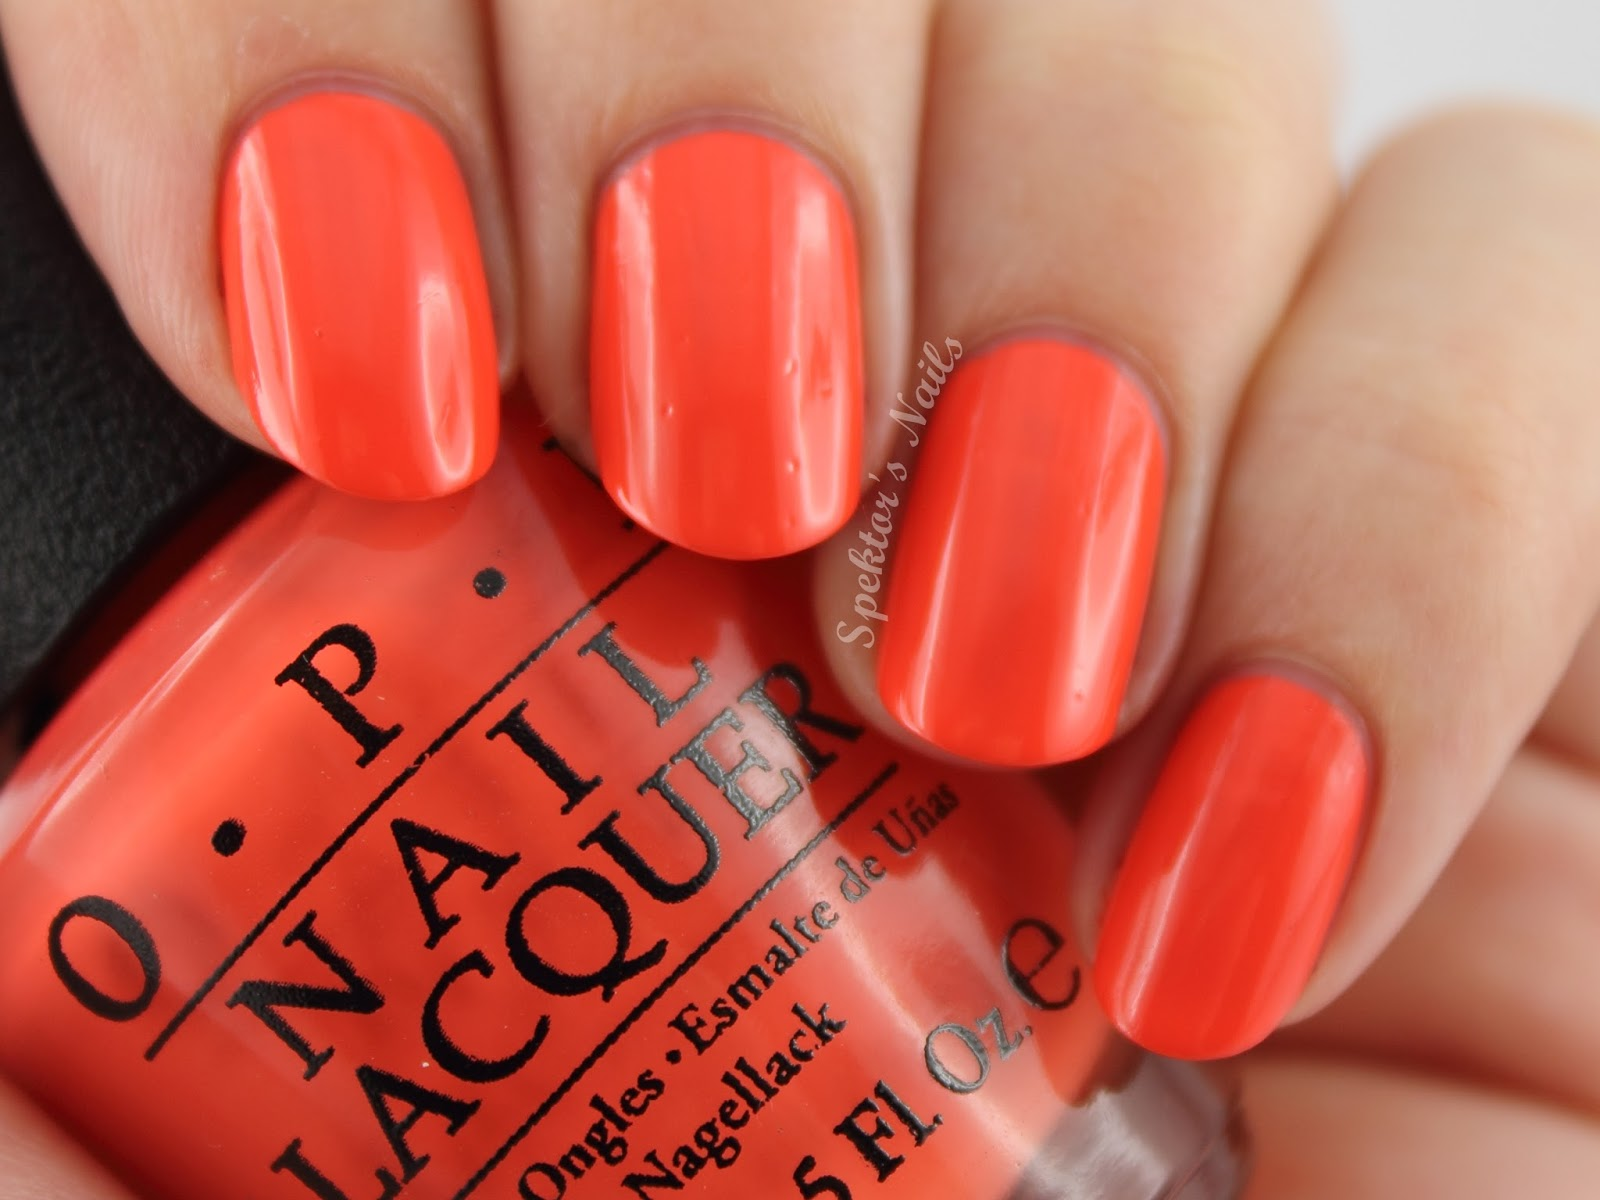 OPI Nordic Can't Afjörd Not To